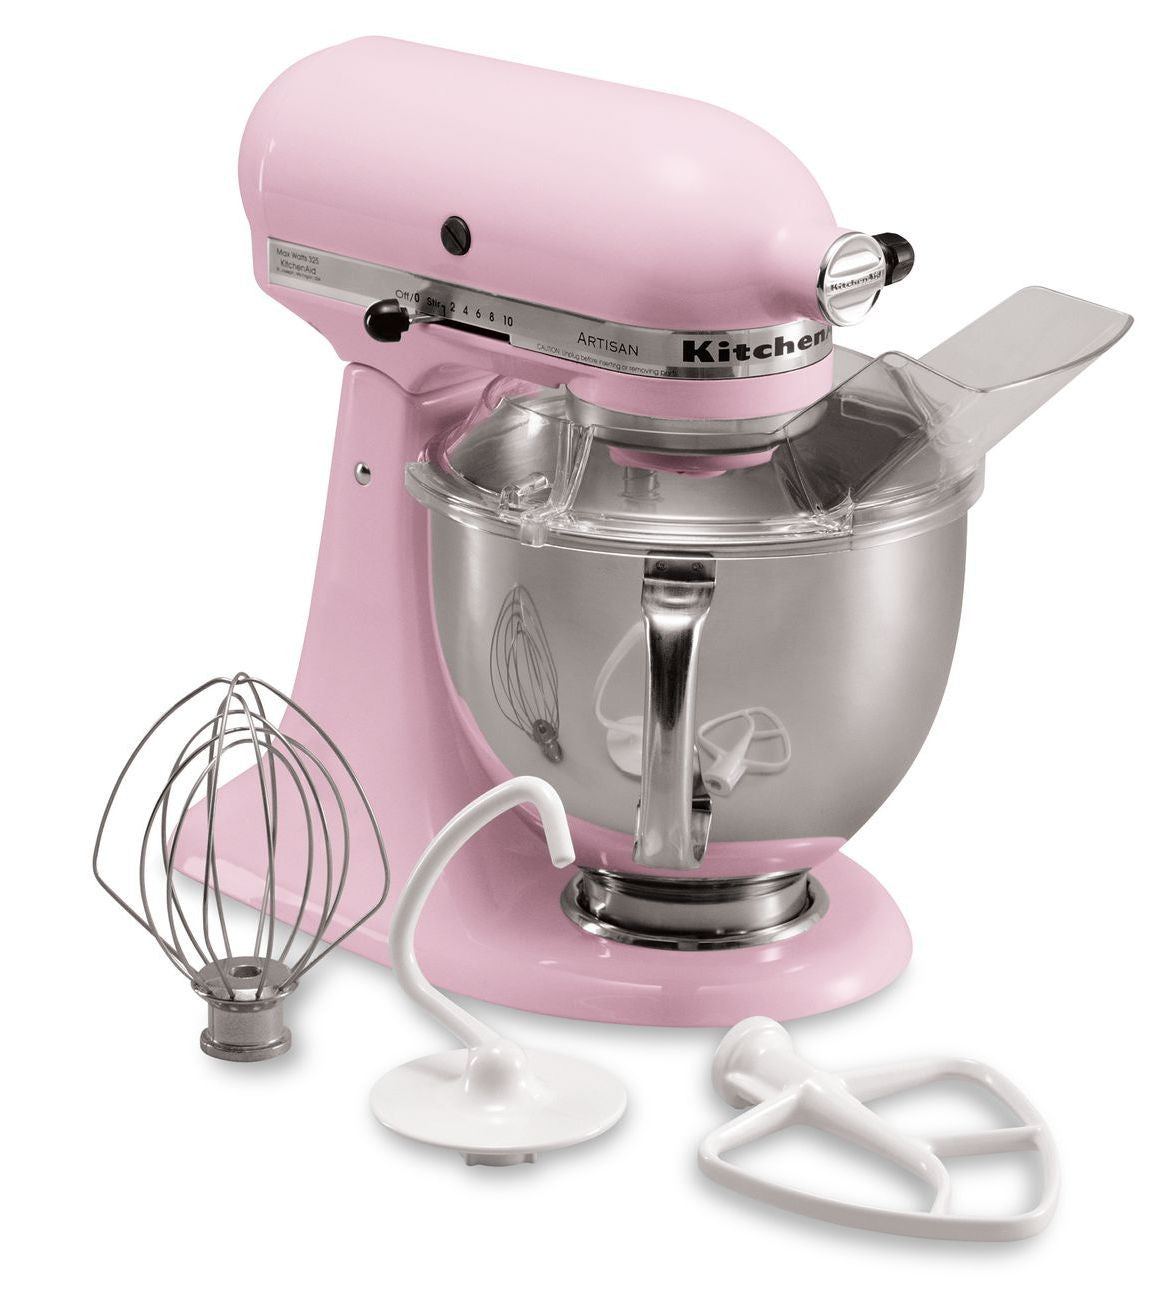 Kitchenaid 5 Qt. Artisan Series with Pouring Shield - Pink KSM150PSPK